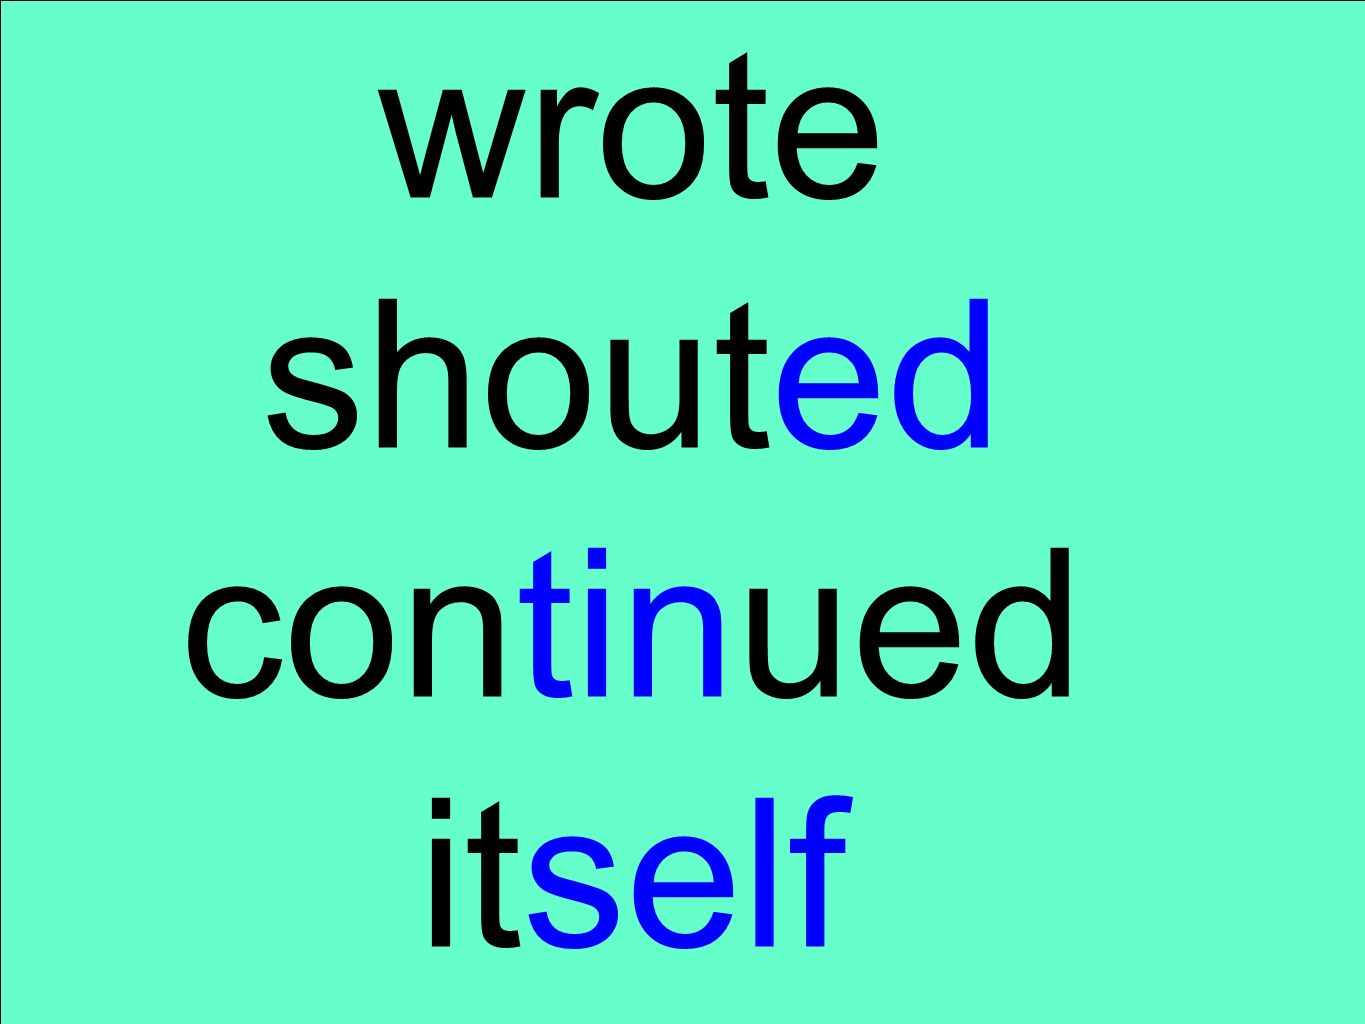 wrote shouted continued itself